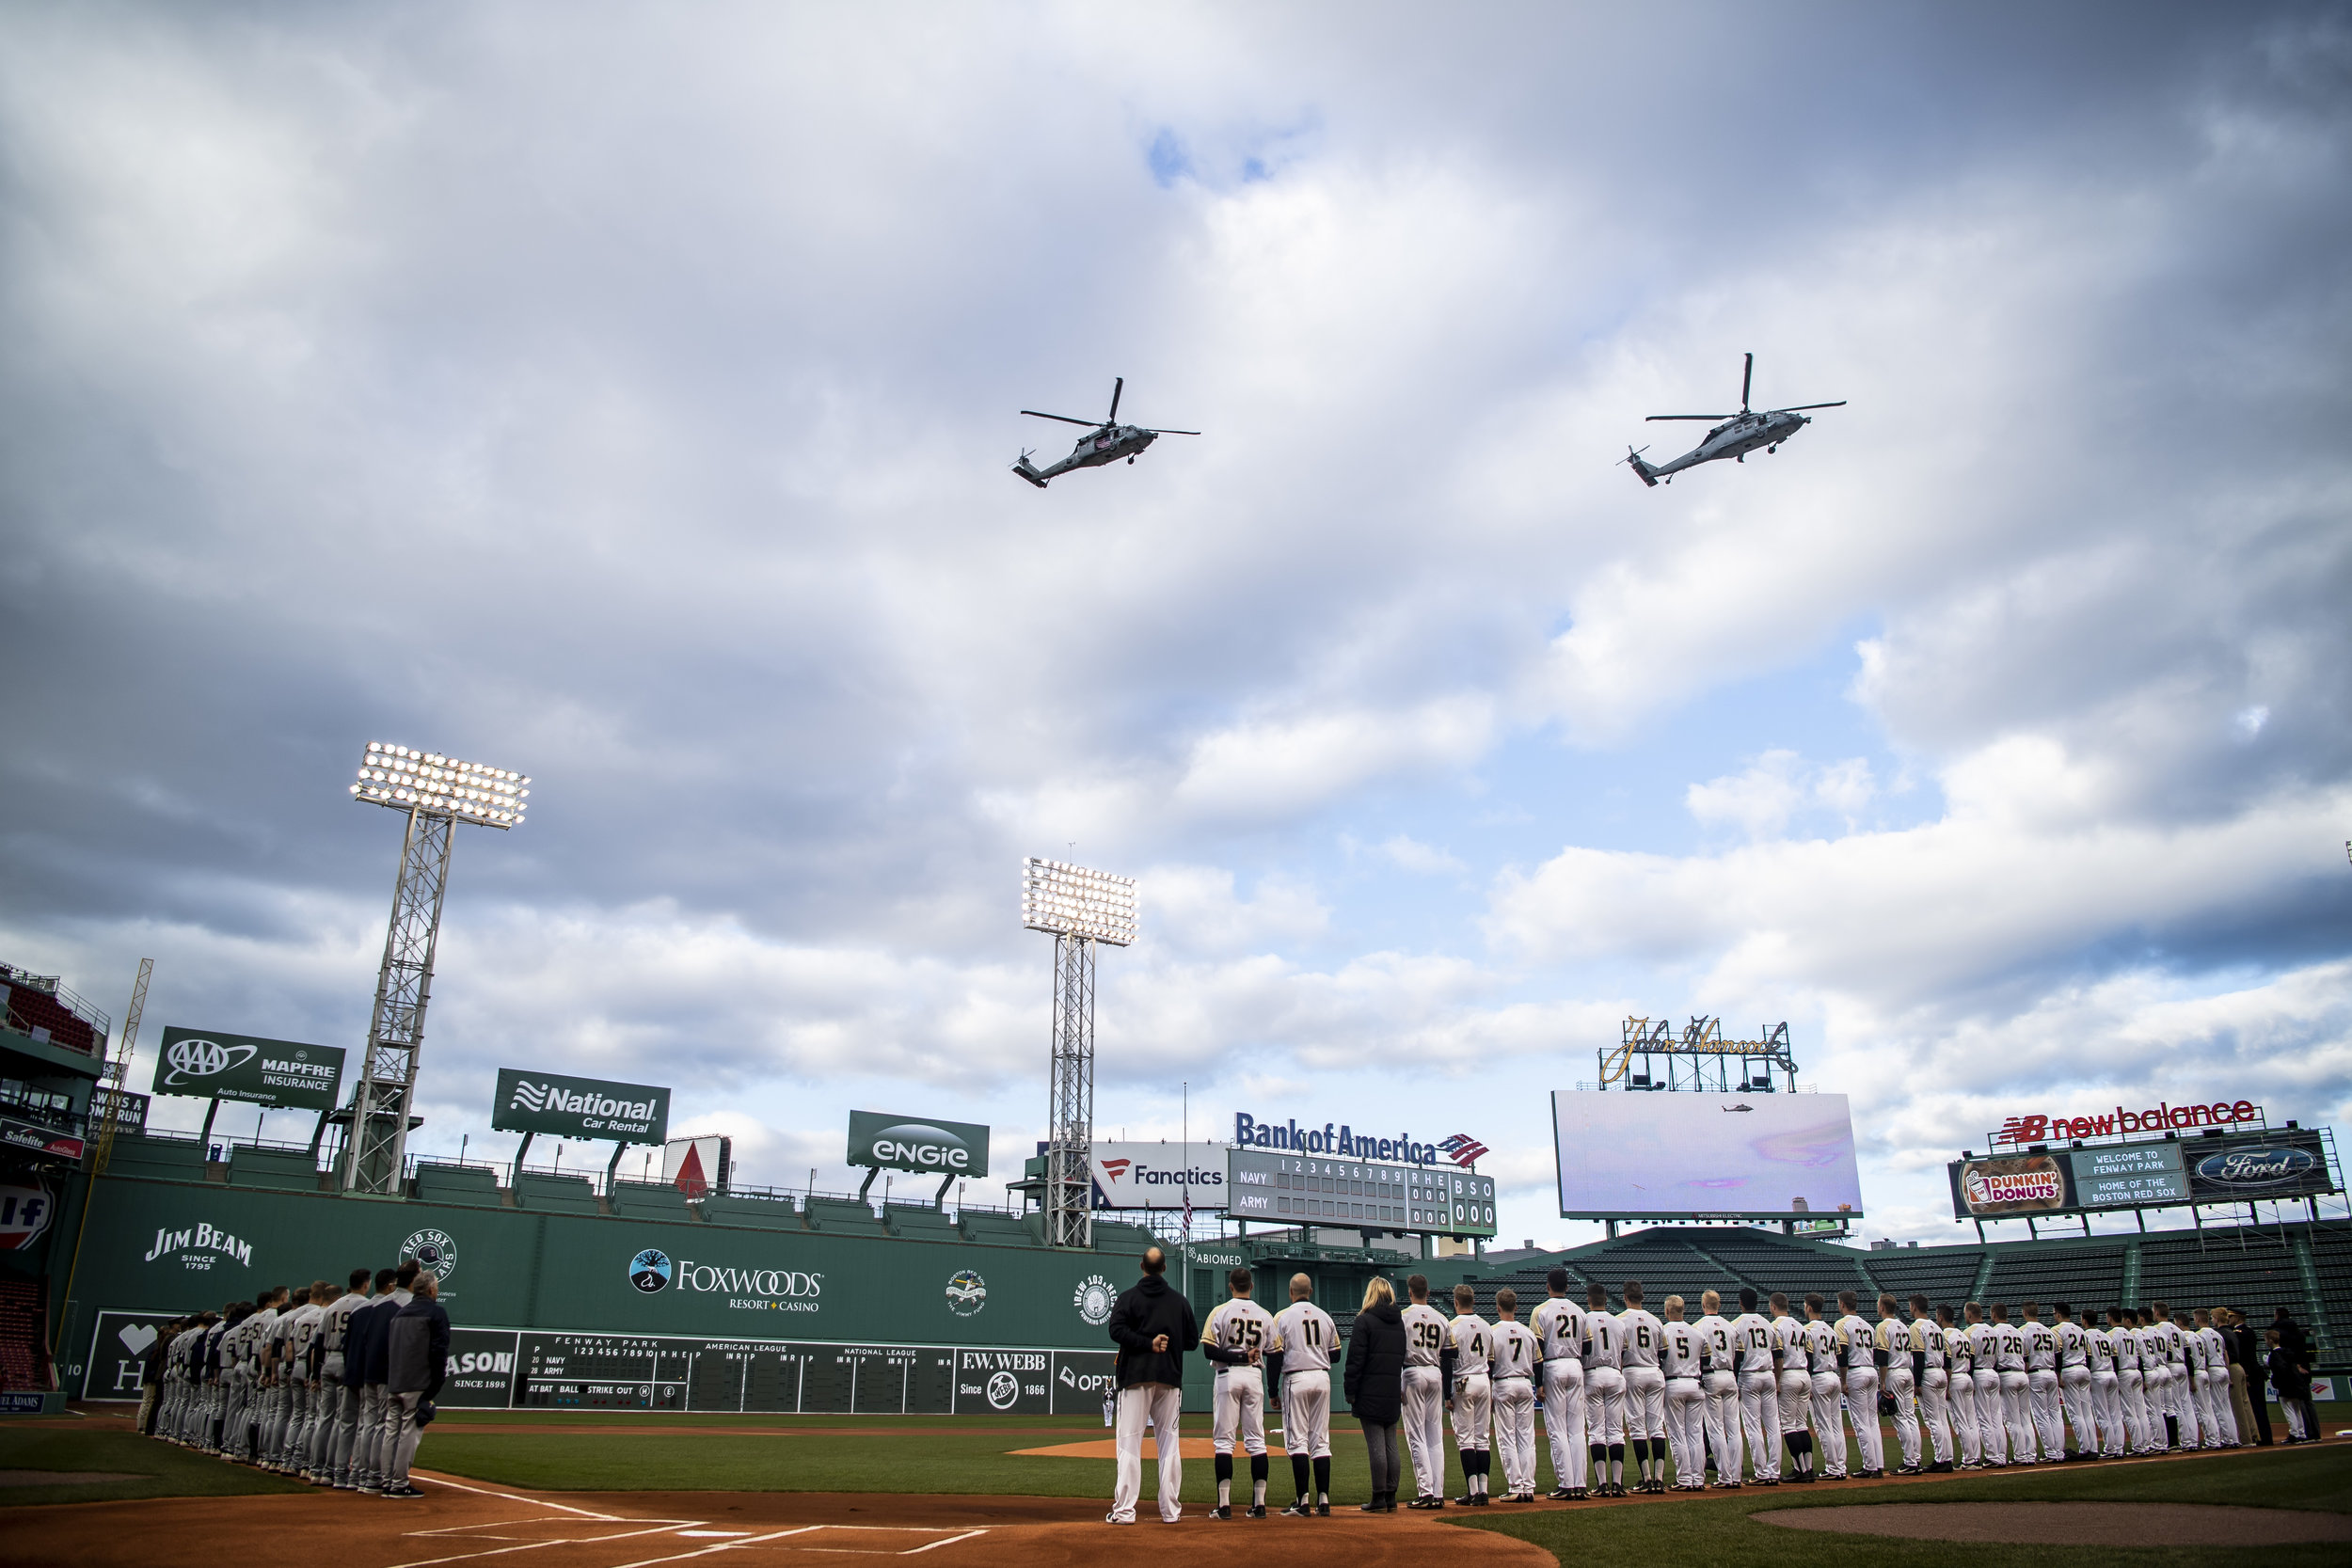 April 20, 2018, Boston, MA: Helicopters fly over the ballpark before Army - West Point faces The Naval Academy at Fenway Park in Boston, Massachusetts Friday, April 20, 2018. (Photo by Matthew Thomas/Boston Red Sox)